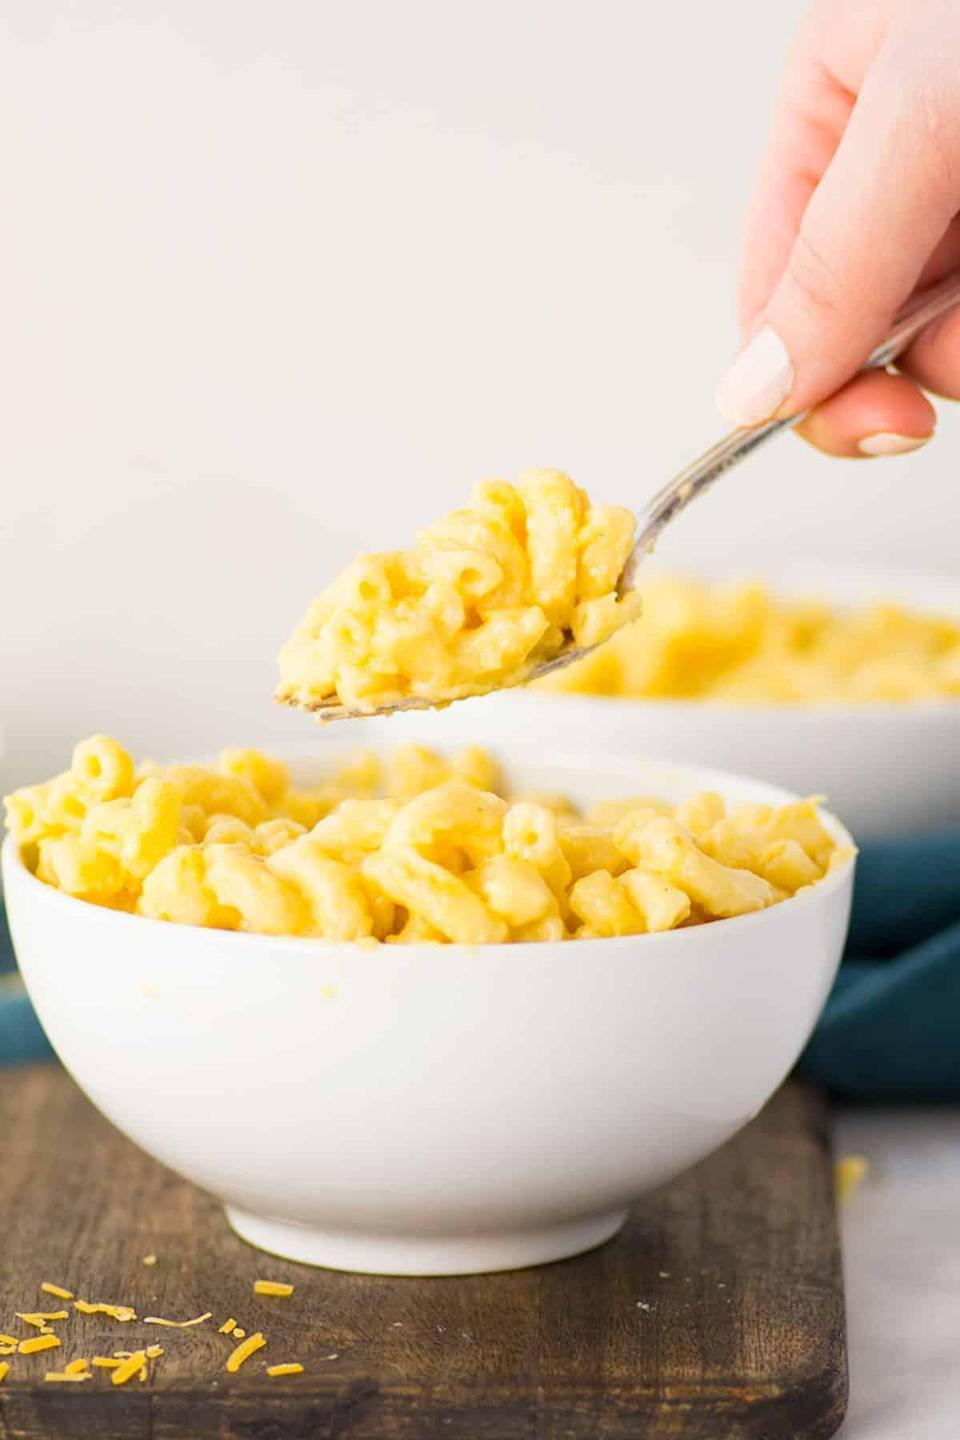 """<p>If cooking isn't your forte, opt for something simple that both you and the kids will love: <a href=""""https://www.thedailymeal.com/cook/25-amazing-mac-and-cheese-recipes-0?referrer=yahoo&category=beauty_food&include_utm=1&utm_medium=referral&utm_source=yahoo&utm_campaign=feed"""" rel=""""nofollow noopener"""" target=""""_blank"""" data-ylk=""""slk:macaroni and cheese"""" class=""""link rapid-noclick-resp"""">macaroni and cheese</a>. That's <em>not </em>from a box.</p> <p><a href=""""https://www.thedailymeal.com/best-recipes/mac-and-cheese-recipe-freezer-homecooked?referrer=yahoo&category=beauty_food&include_utm=1&utm_medium=referral&utm_source=yahoo&utm_campaign=feed"""" rel=""""nofollow noopener"""" target=""""_blank"""" data-ylk=""""slk:For the Mac and Cheese recipe, click here."""" class=""""link rapid-noclick-resp"""">For the Mac and Cheese recipe, click here.</a></p>"""